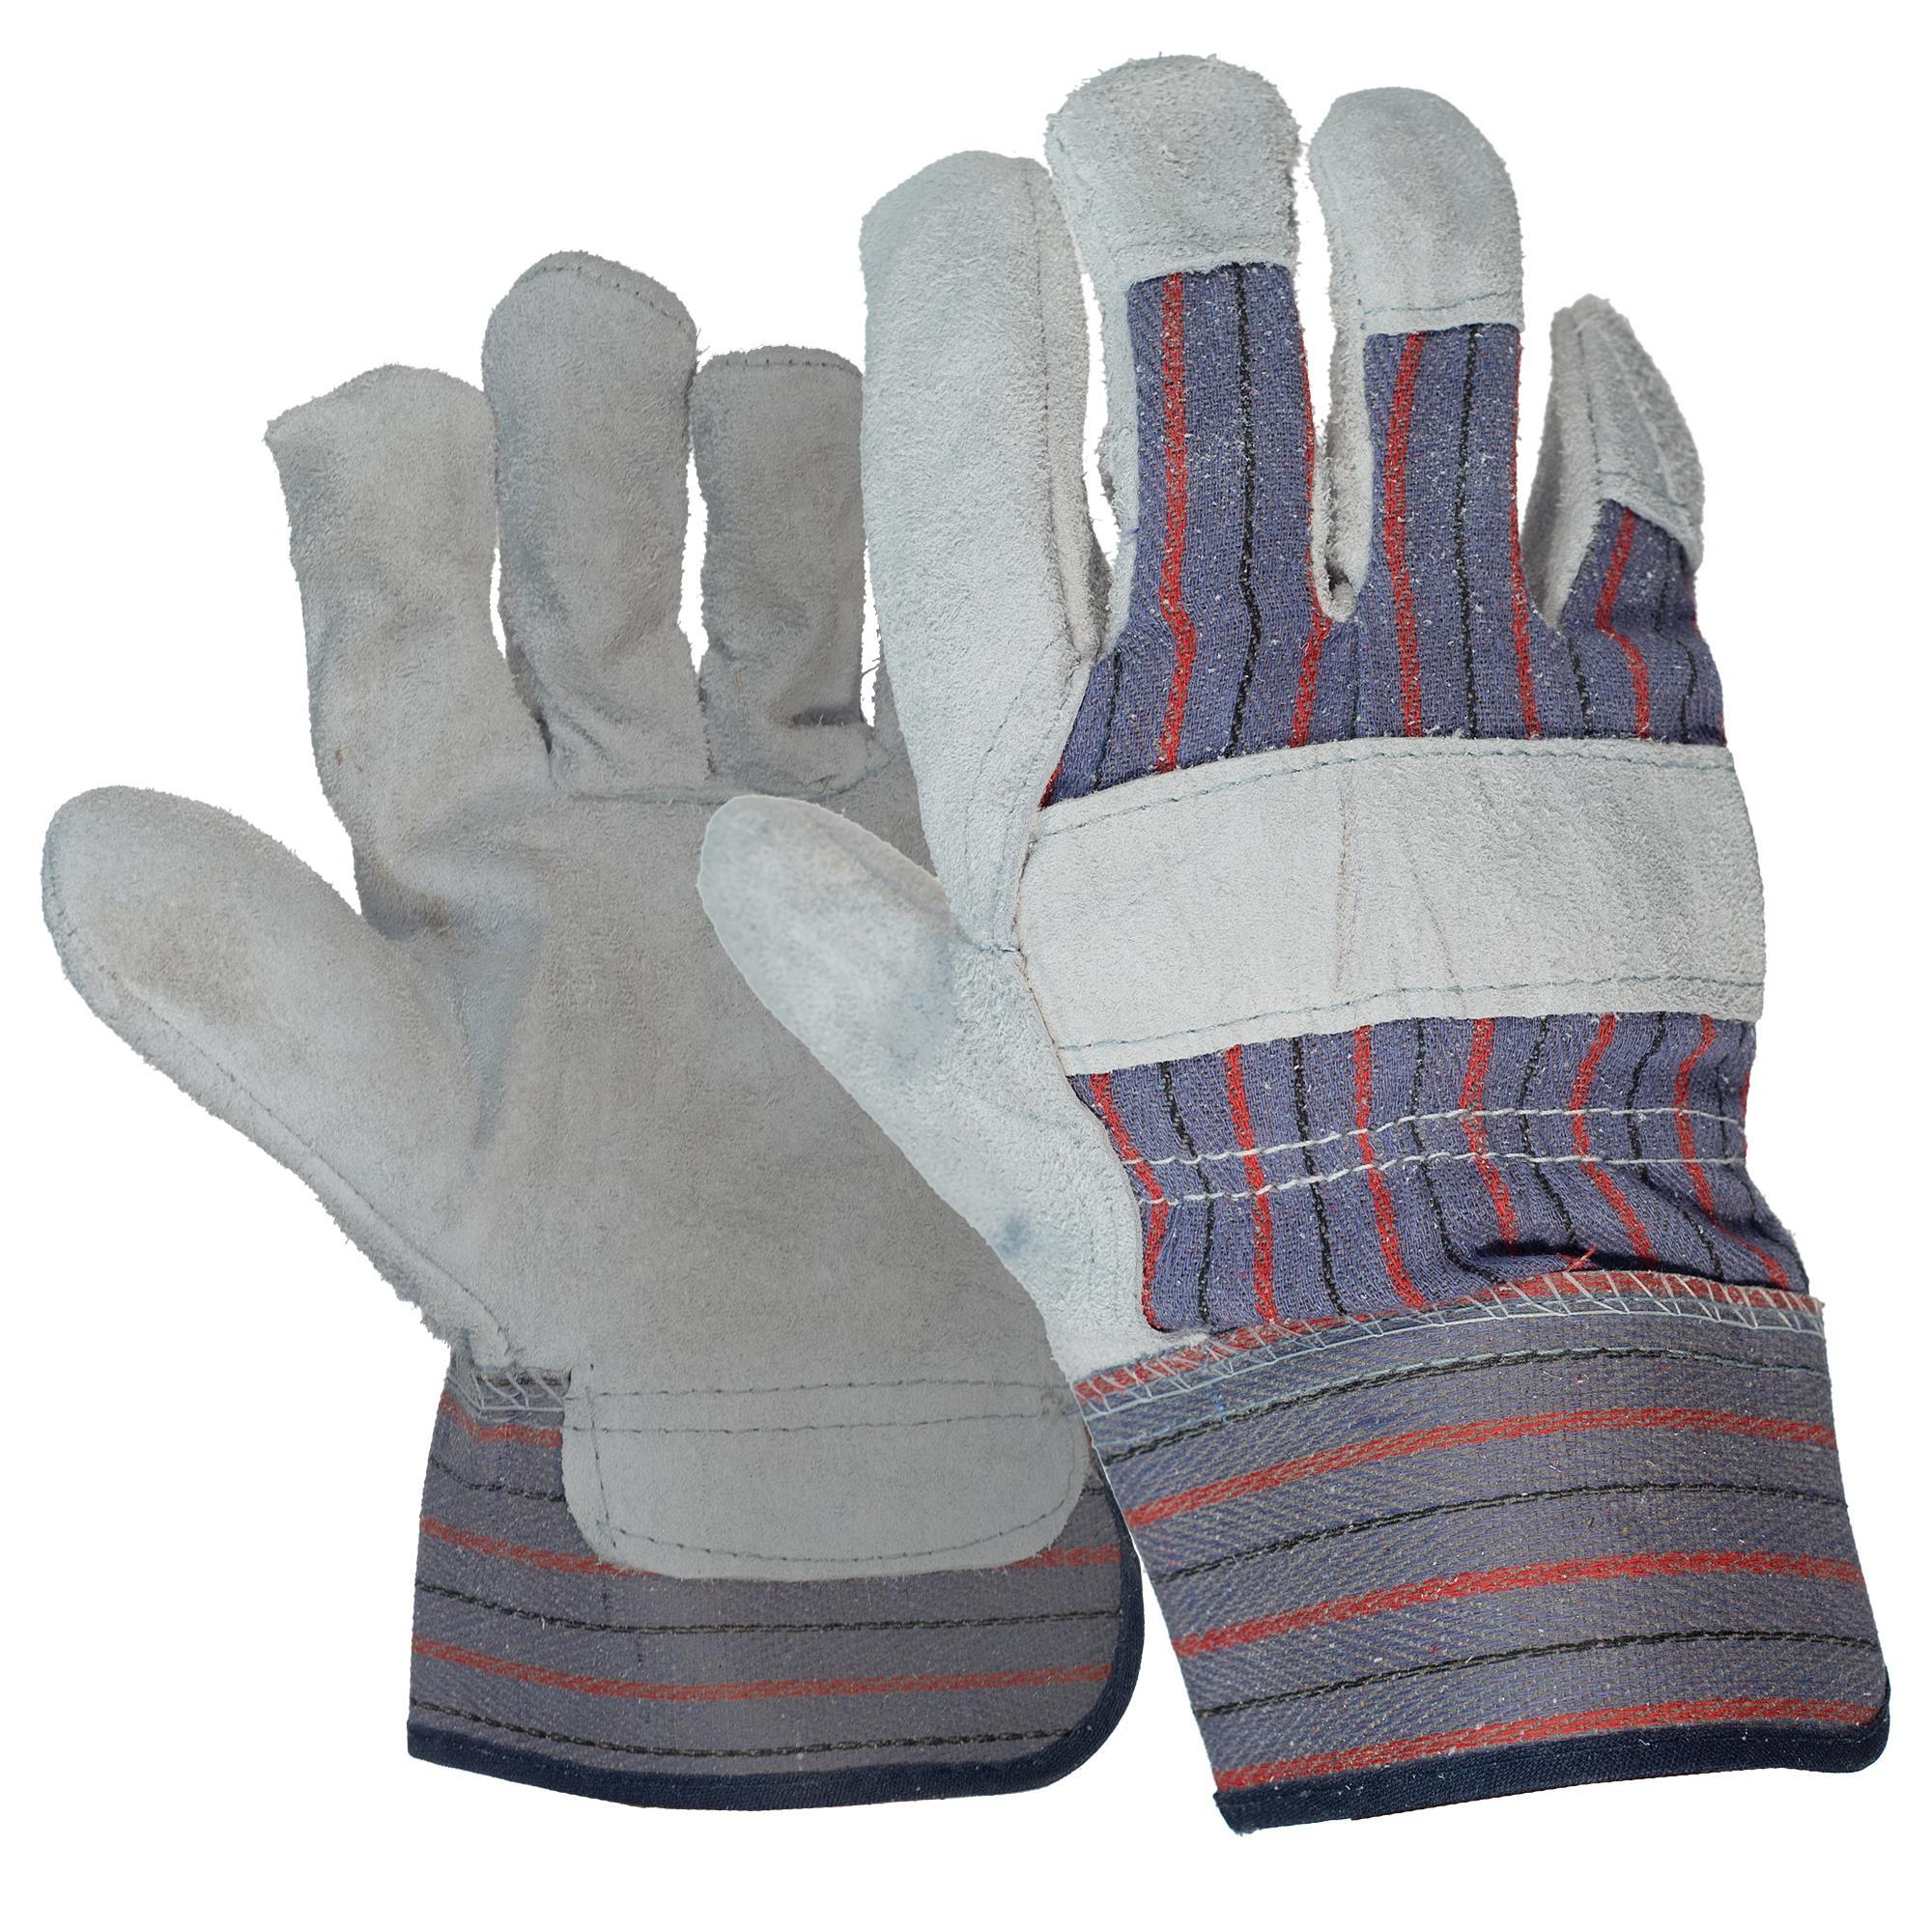 Leather Palm Work Gloves 1pair